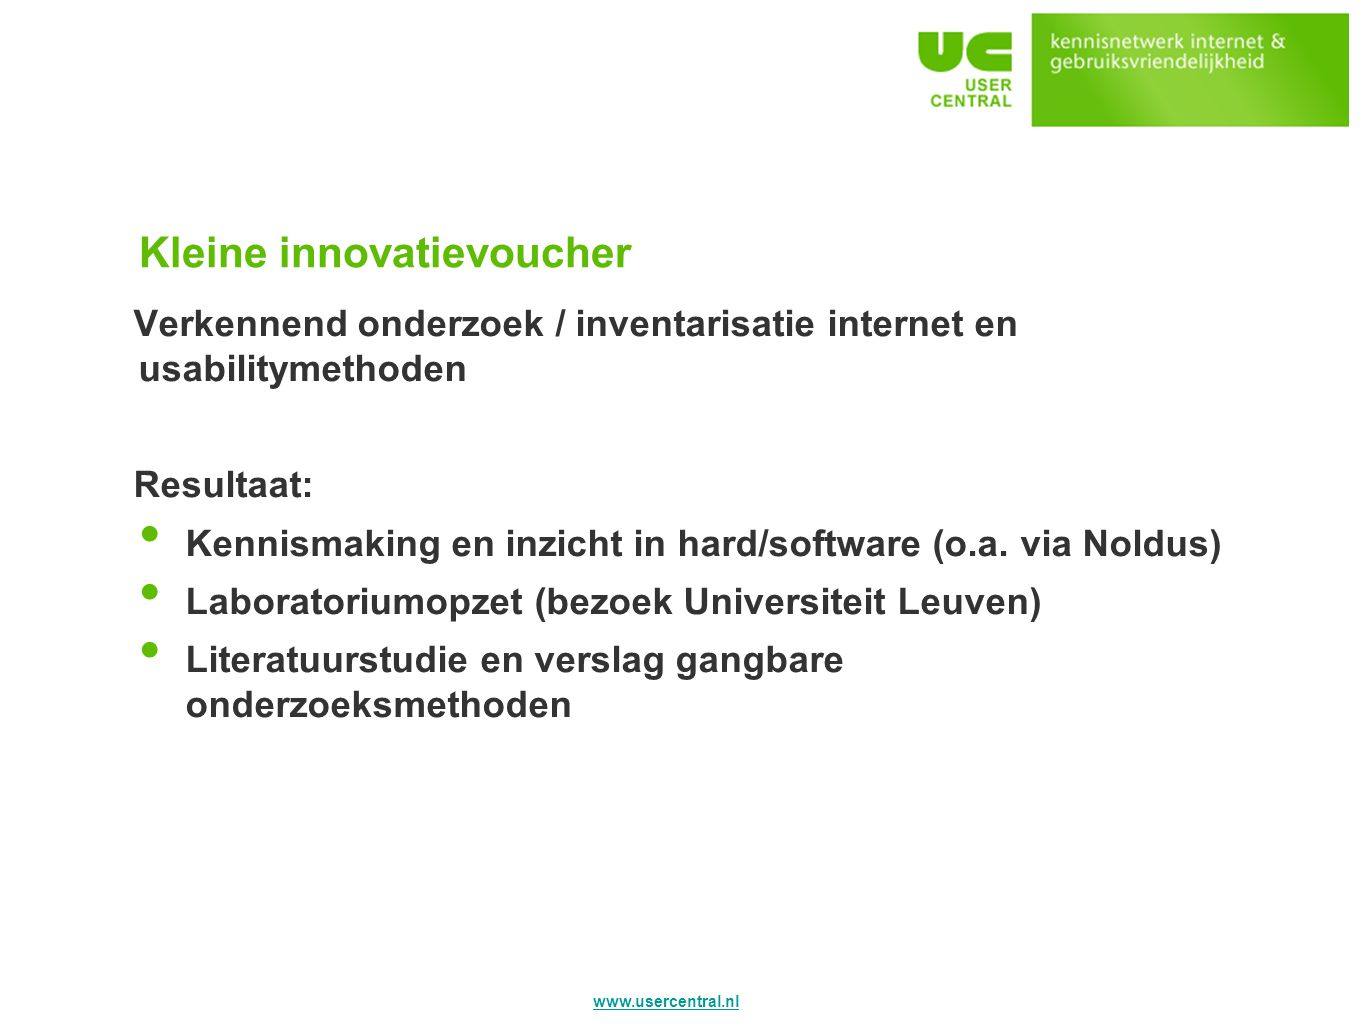 www.usercentral.nl Kleine innovatievoucher Verkennend onderzoek / inventarisatie internet en usabilitymethoden Resultaat: Kennismaking en inzicht in hard/software (o.a.